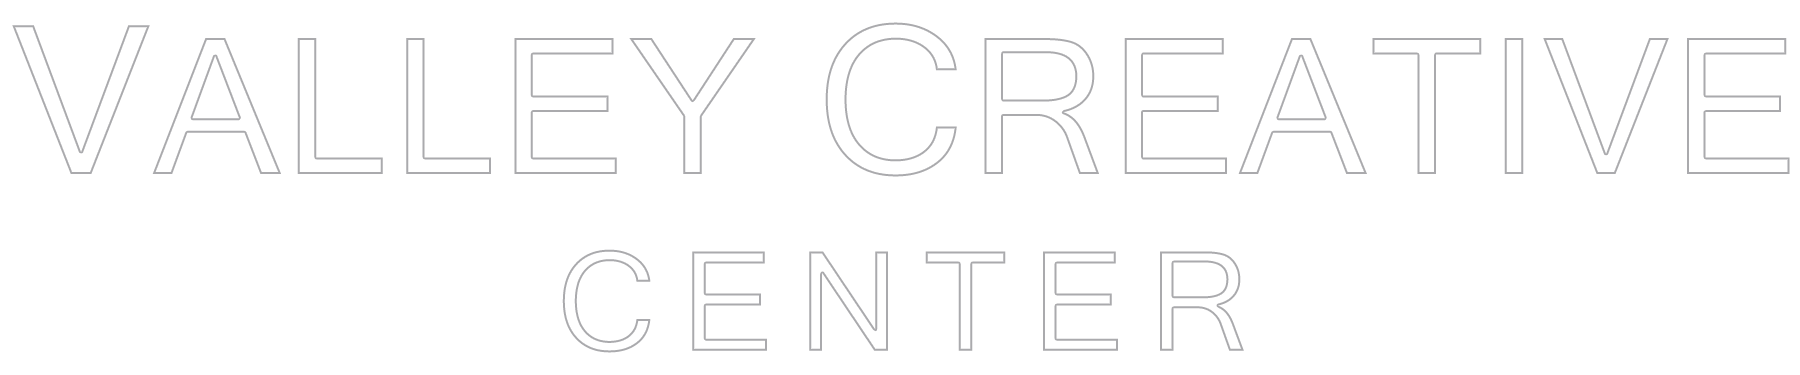 Valley Creative Center